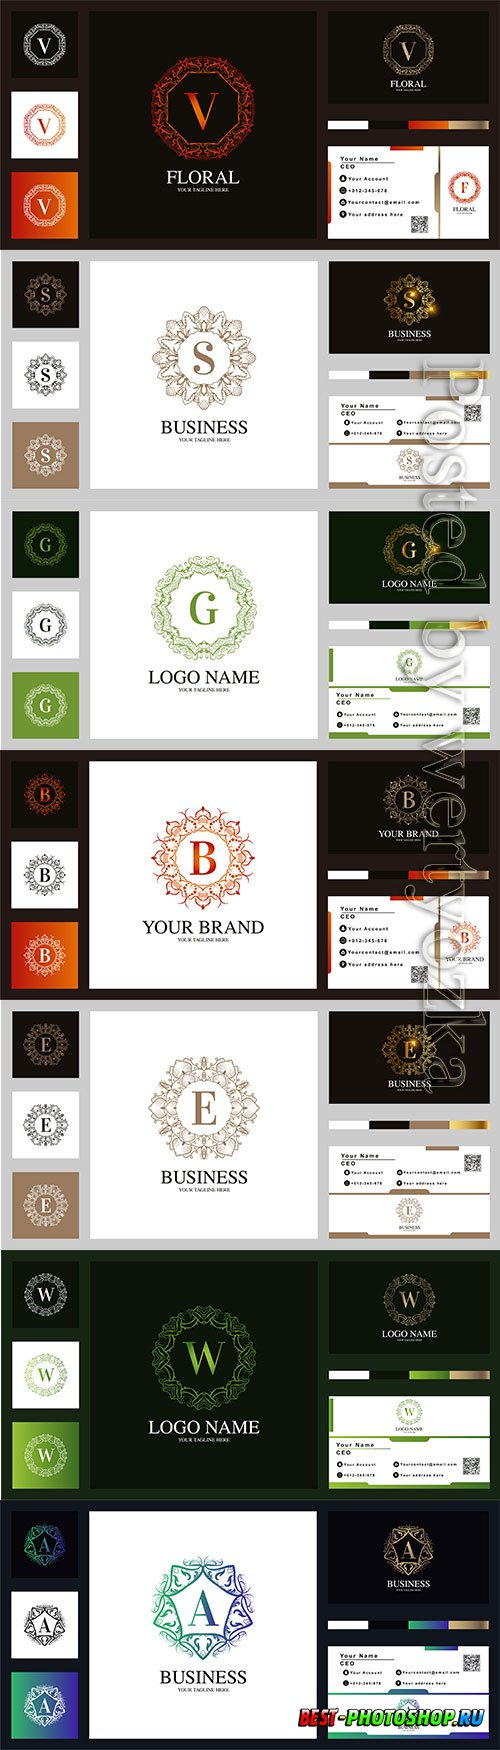 Letter vector luxury ornament flower frame logo template design with business card